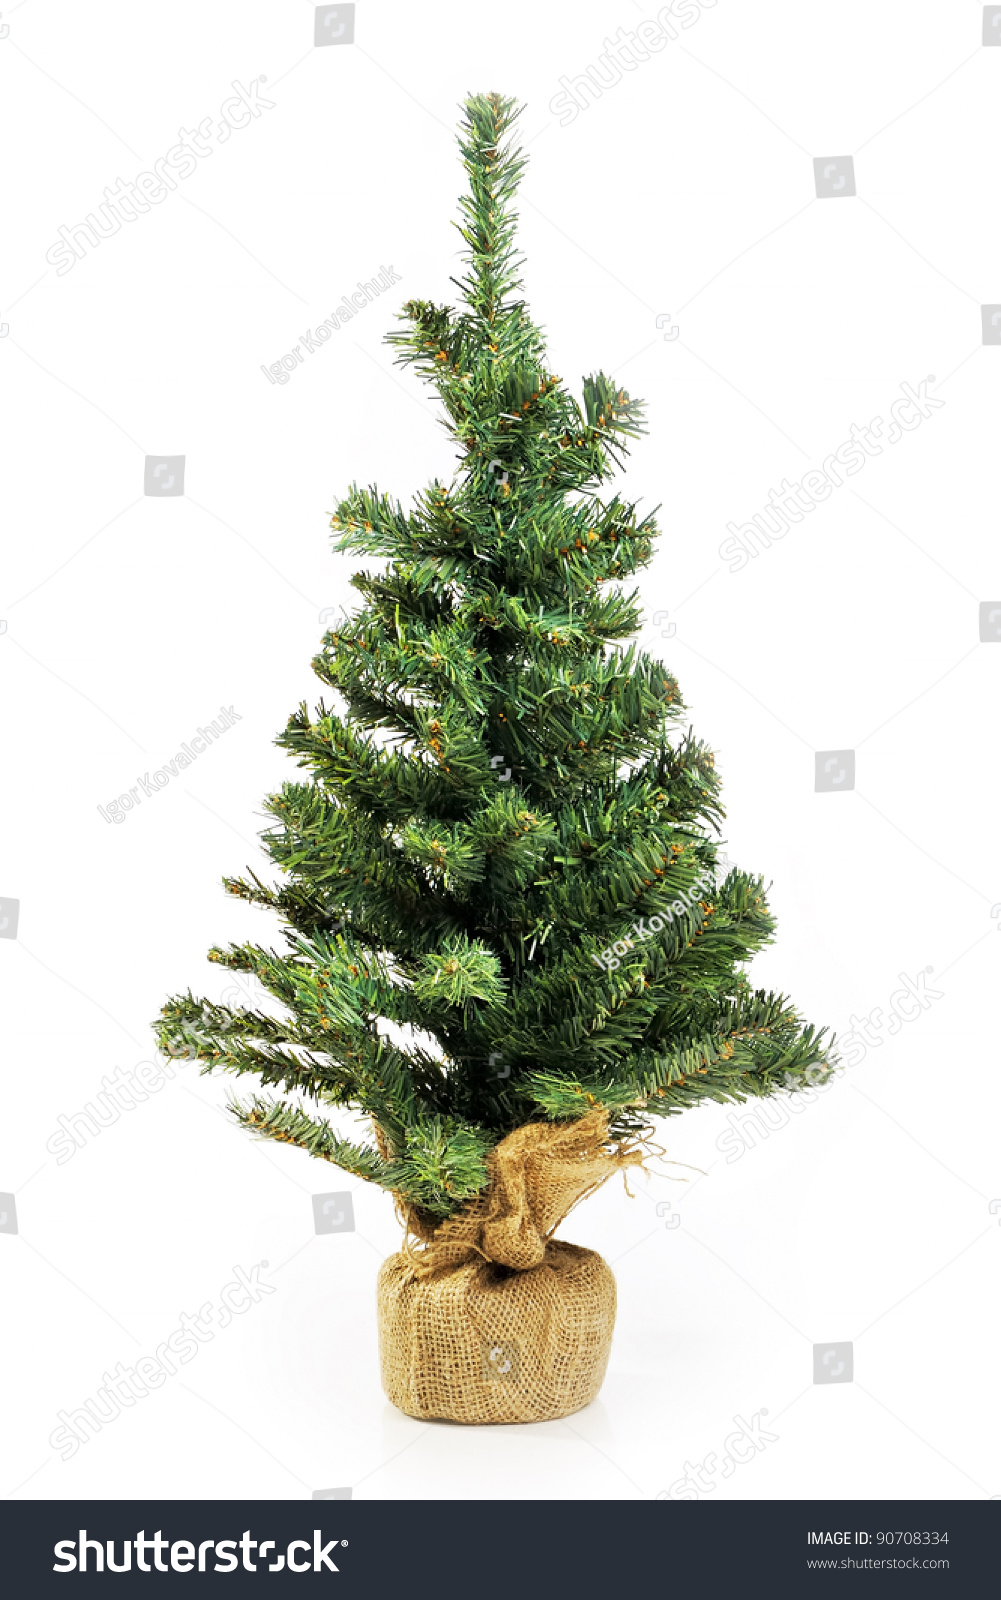 Christmas Tree Without Lights Part - 21: Decoration Image Idea